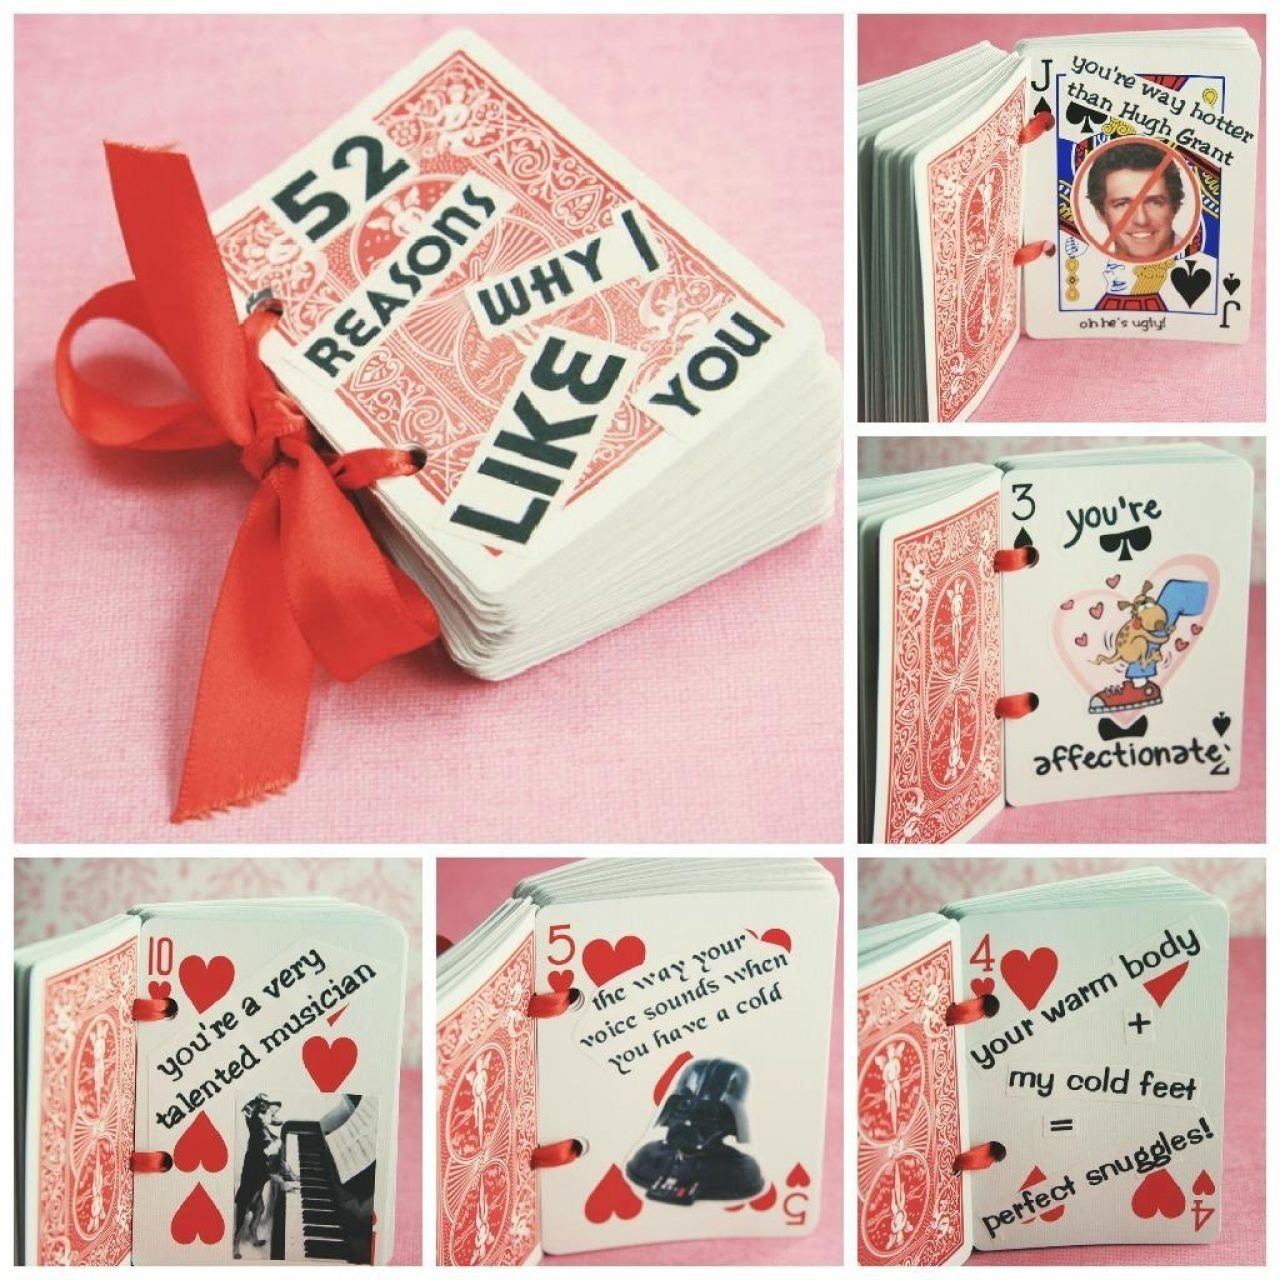 10 Fashionable Valentine Date Ideas For Him creative valentine day ideas for him startupcorner co 2 2020